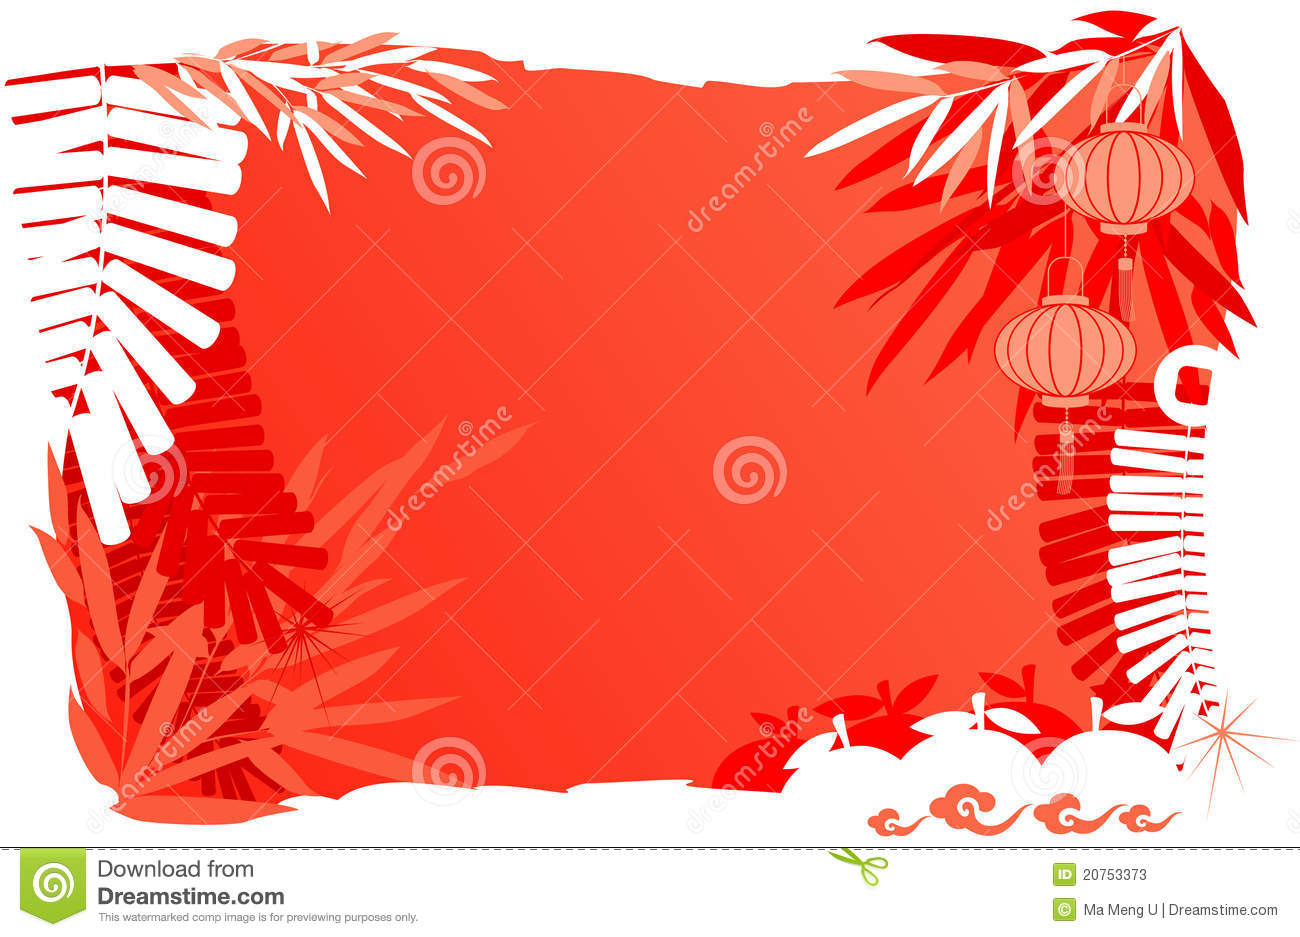 Chinese New Year Day - Abstract background